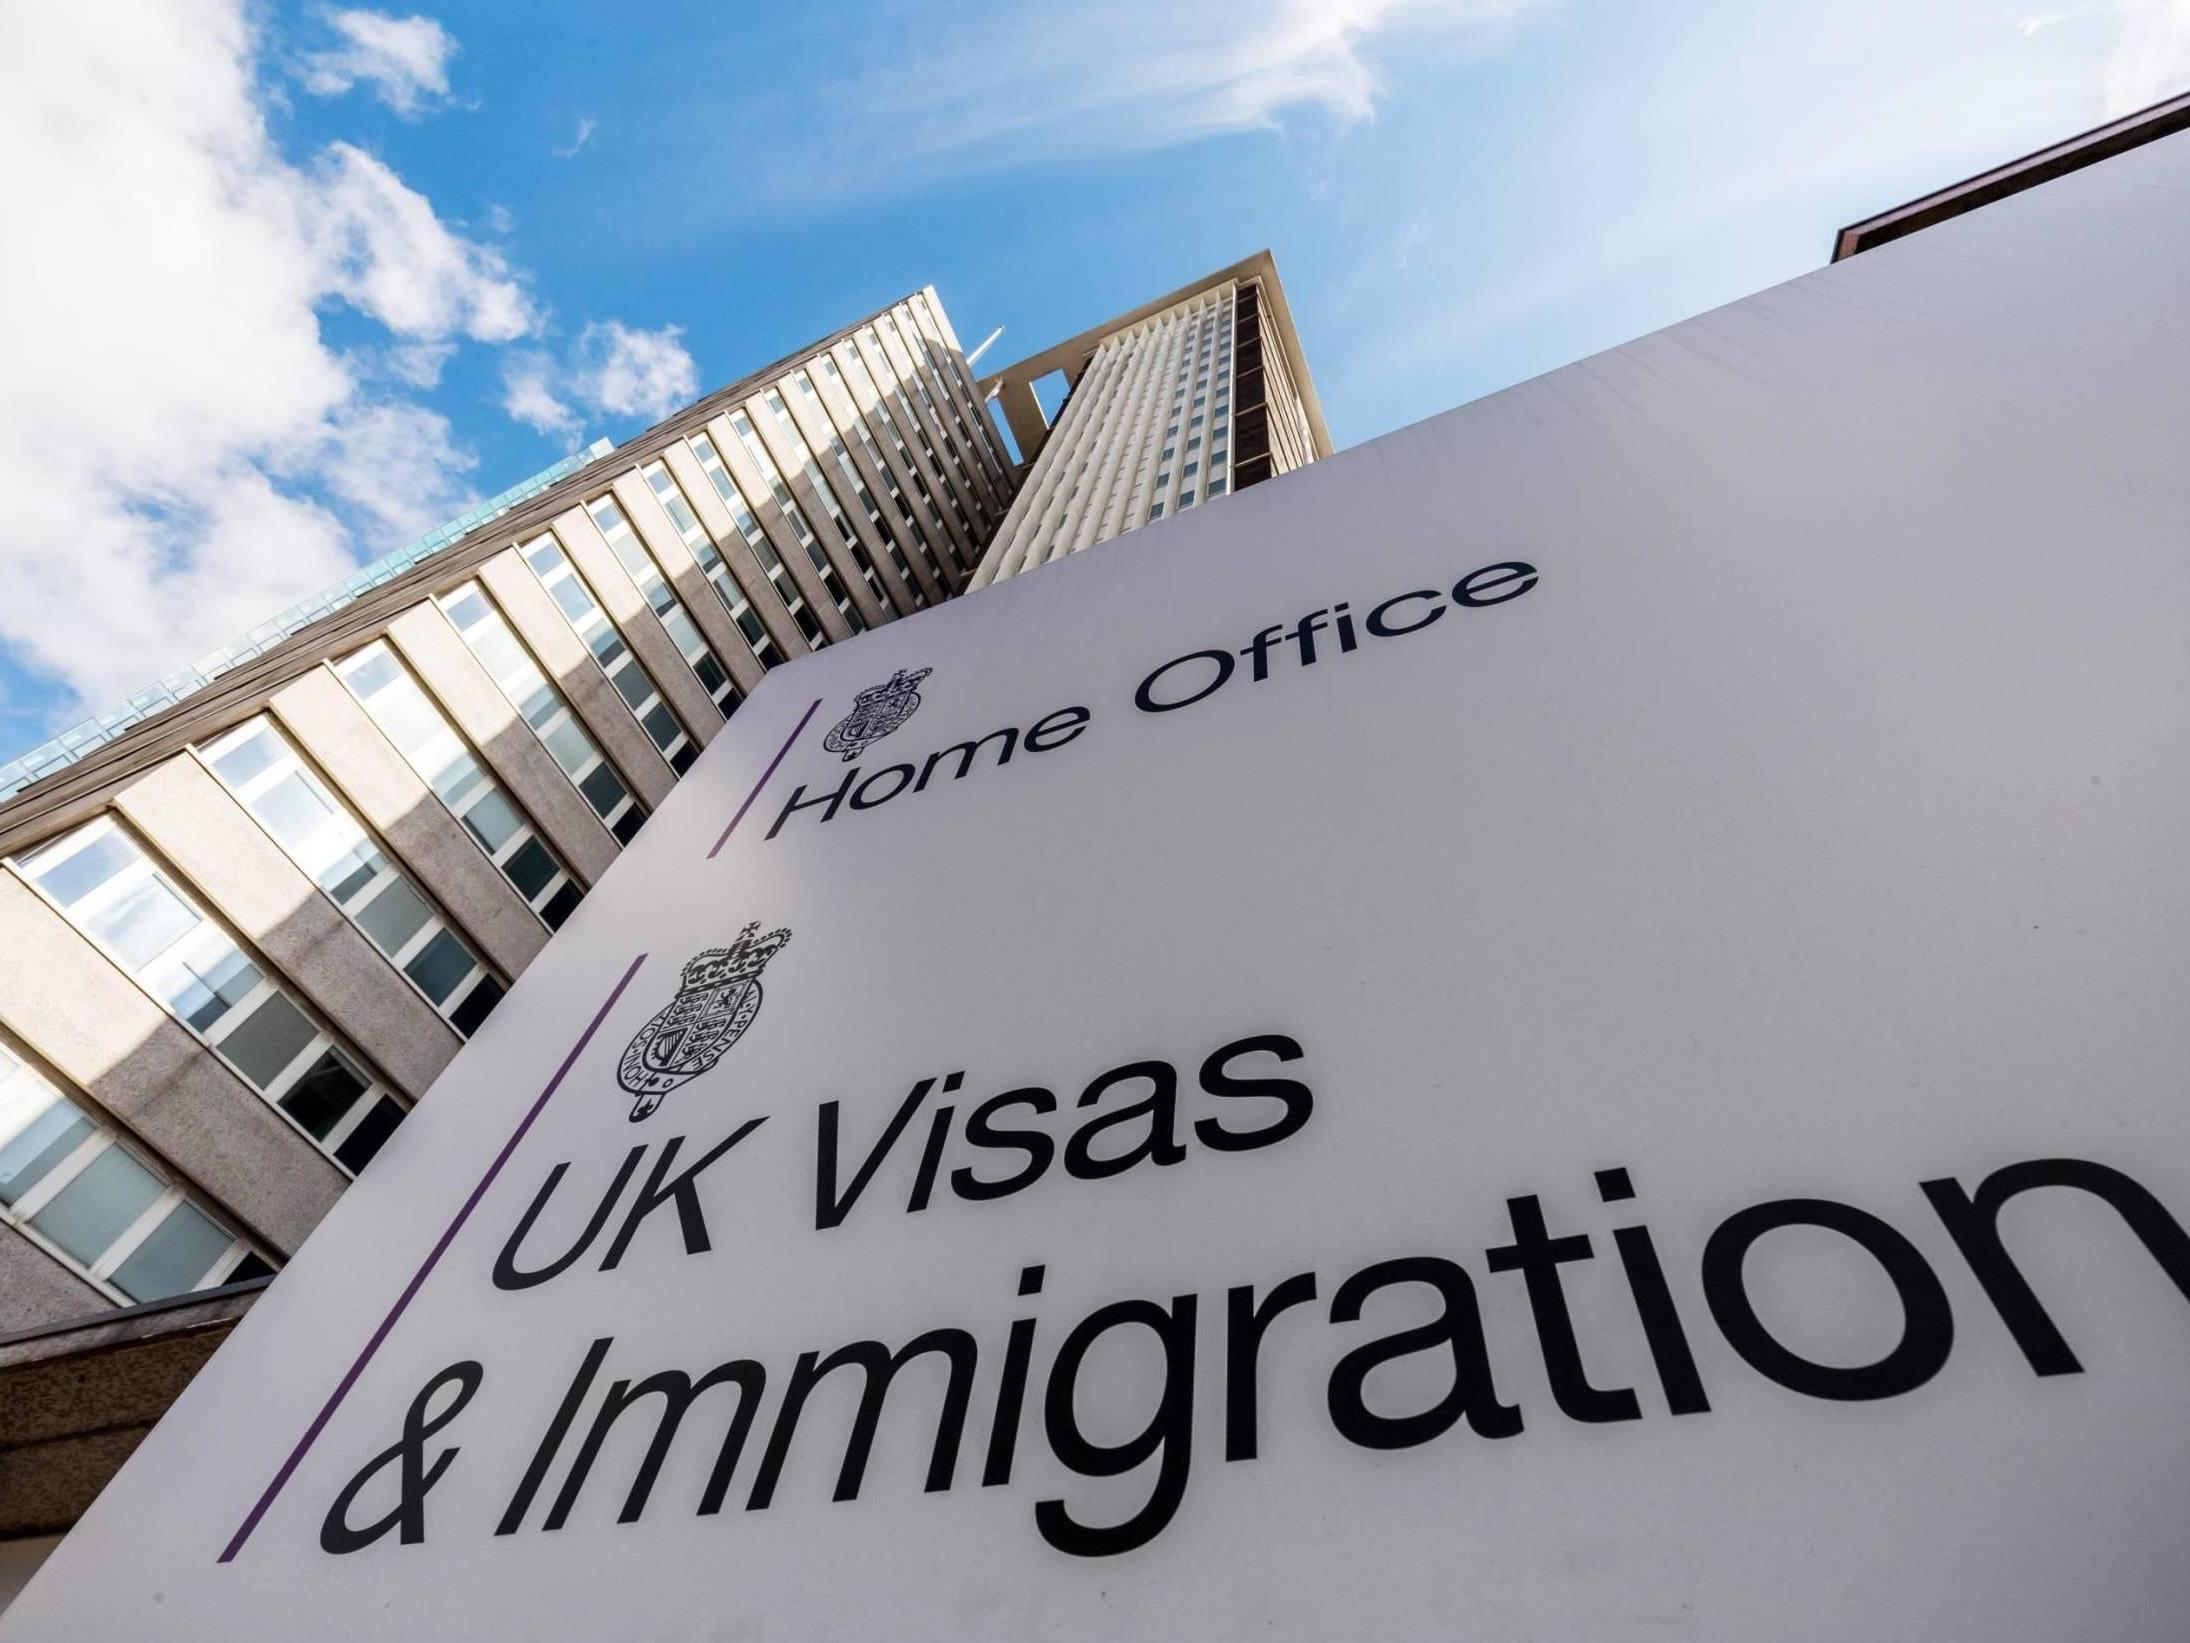 Private firms raking in millions as people forced to pay 'extortionate' fees to apply for UK status